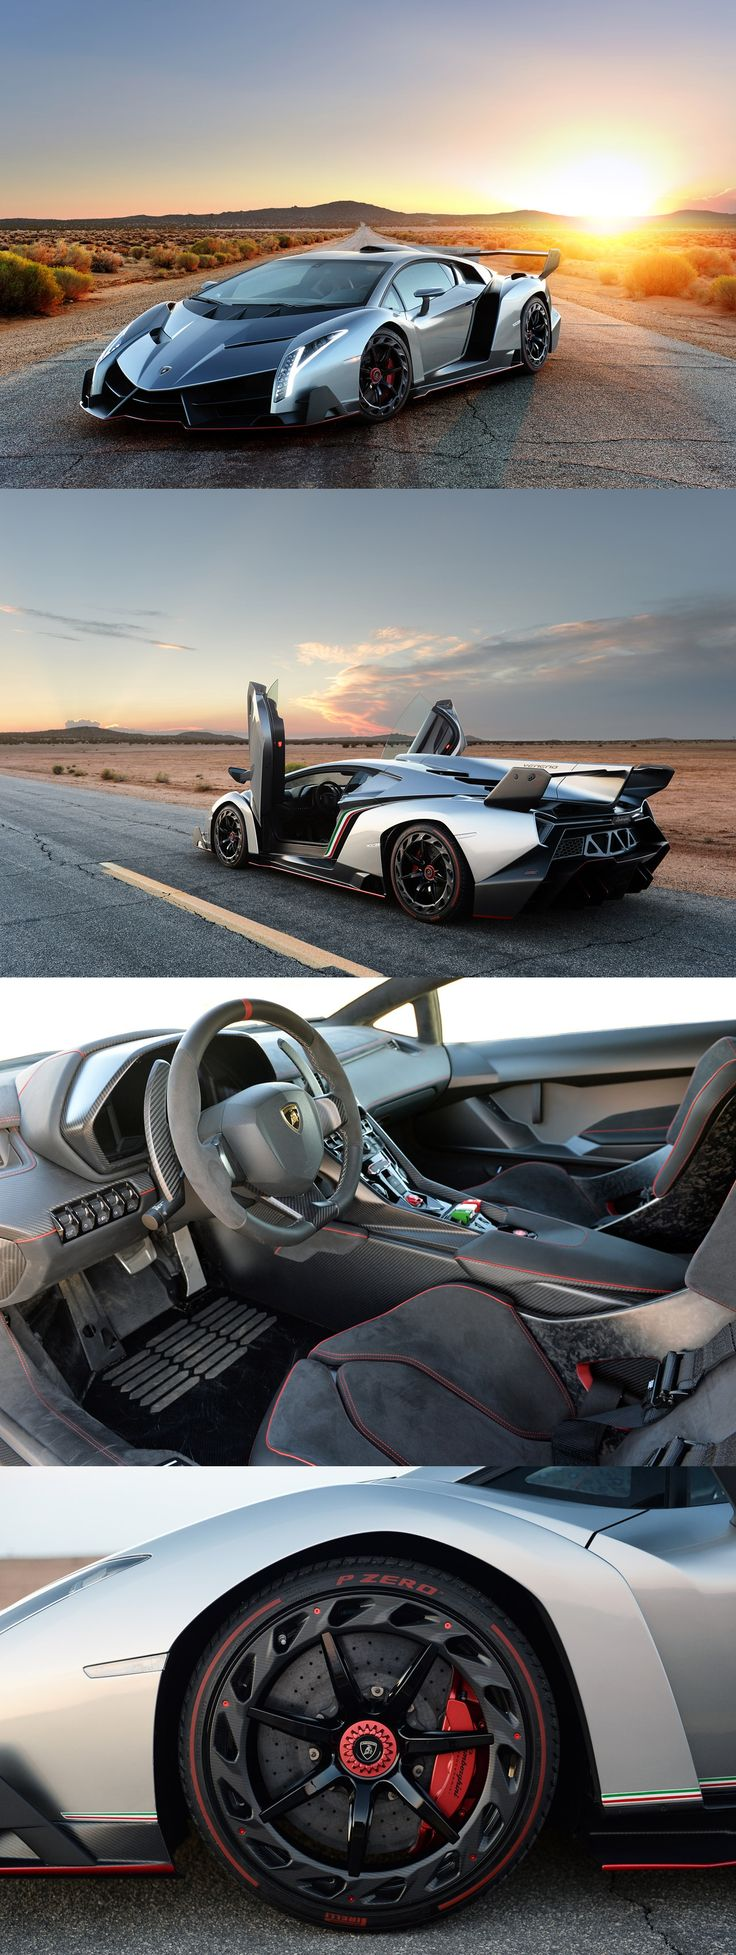 Lamborghini Veneno... Masterpiece on wheels.! Want one? Just about 4 million...